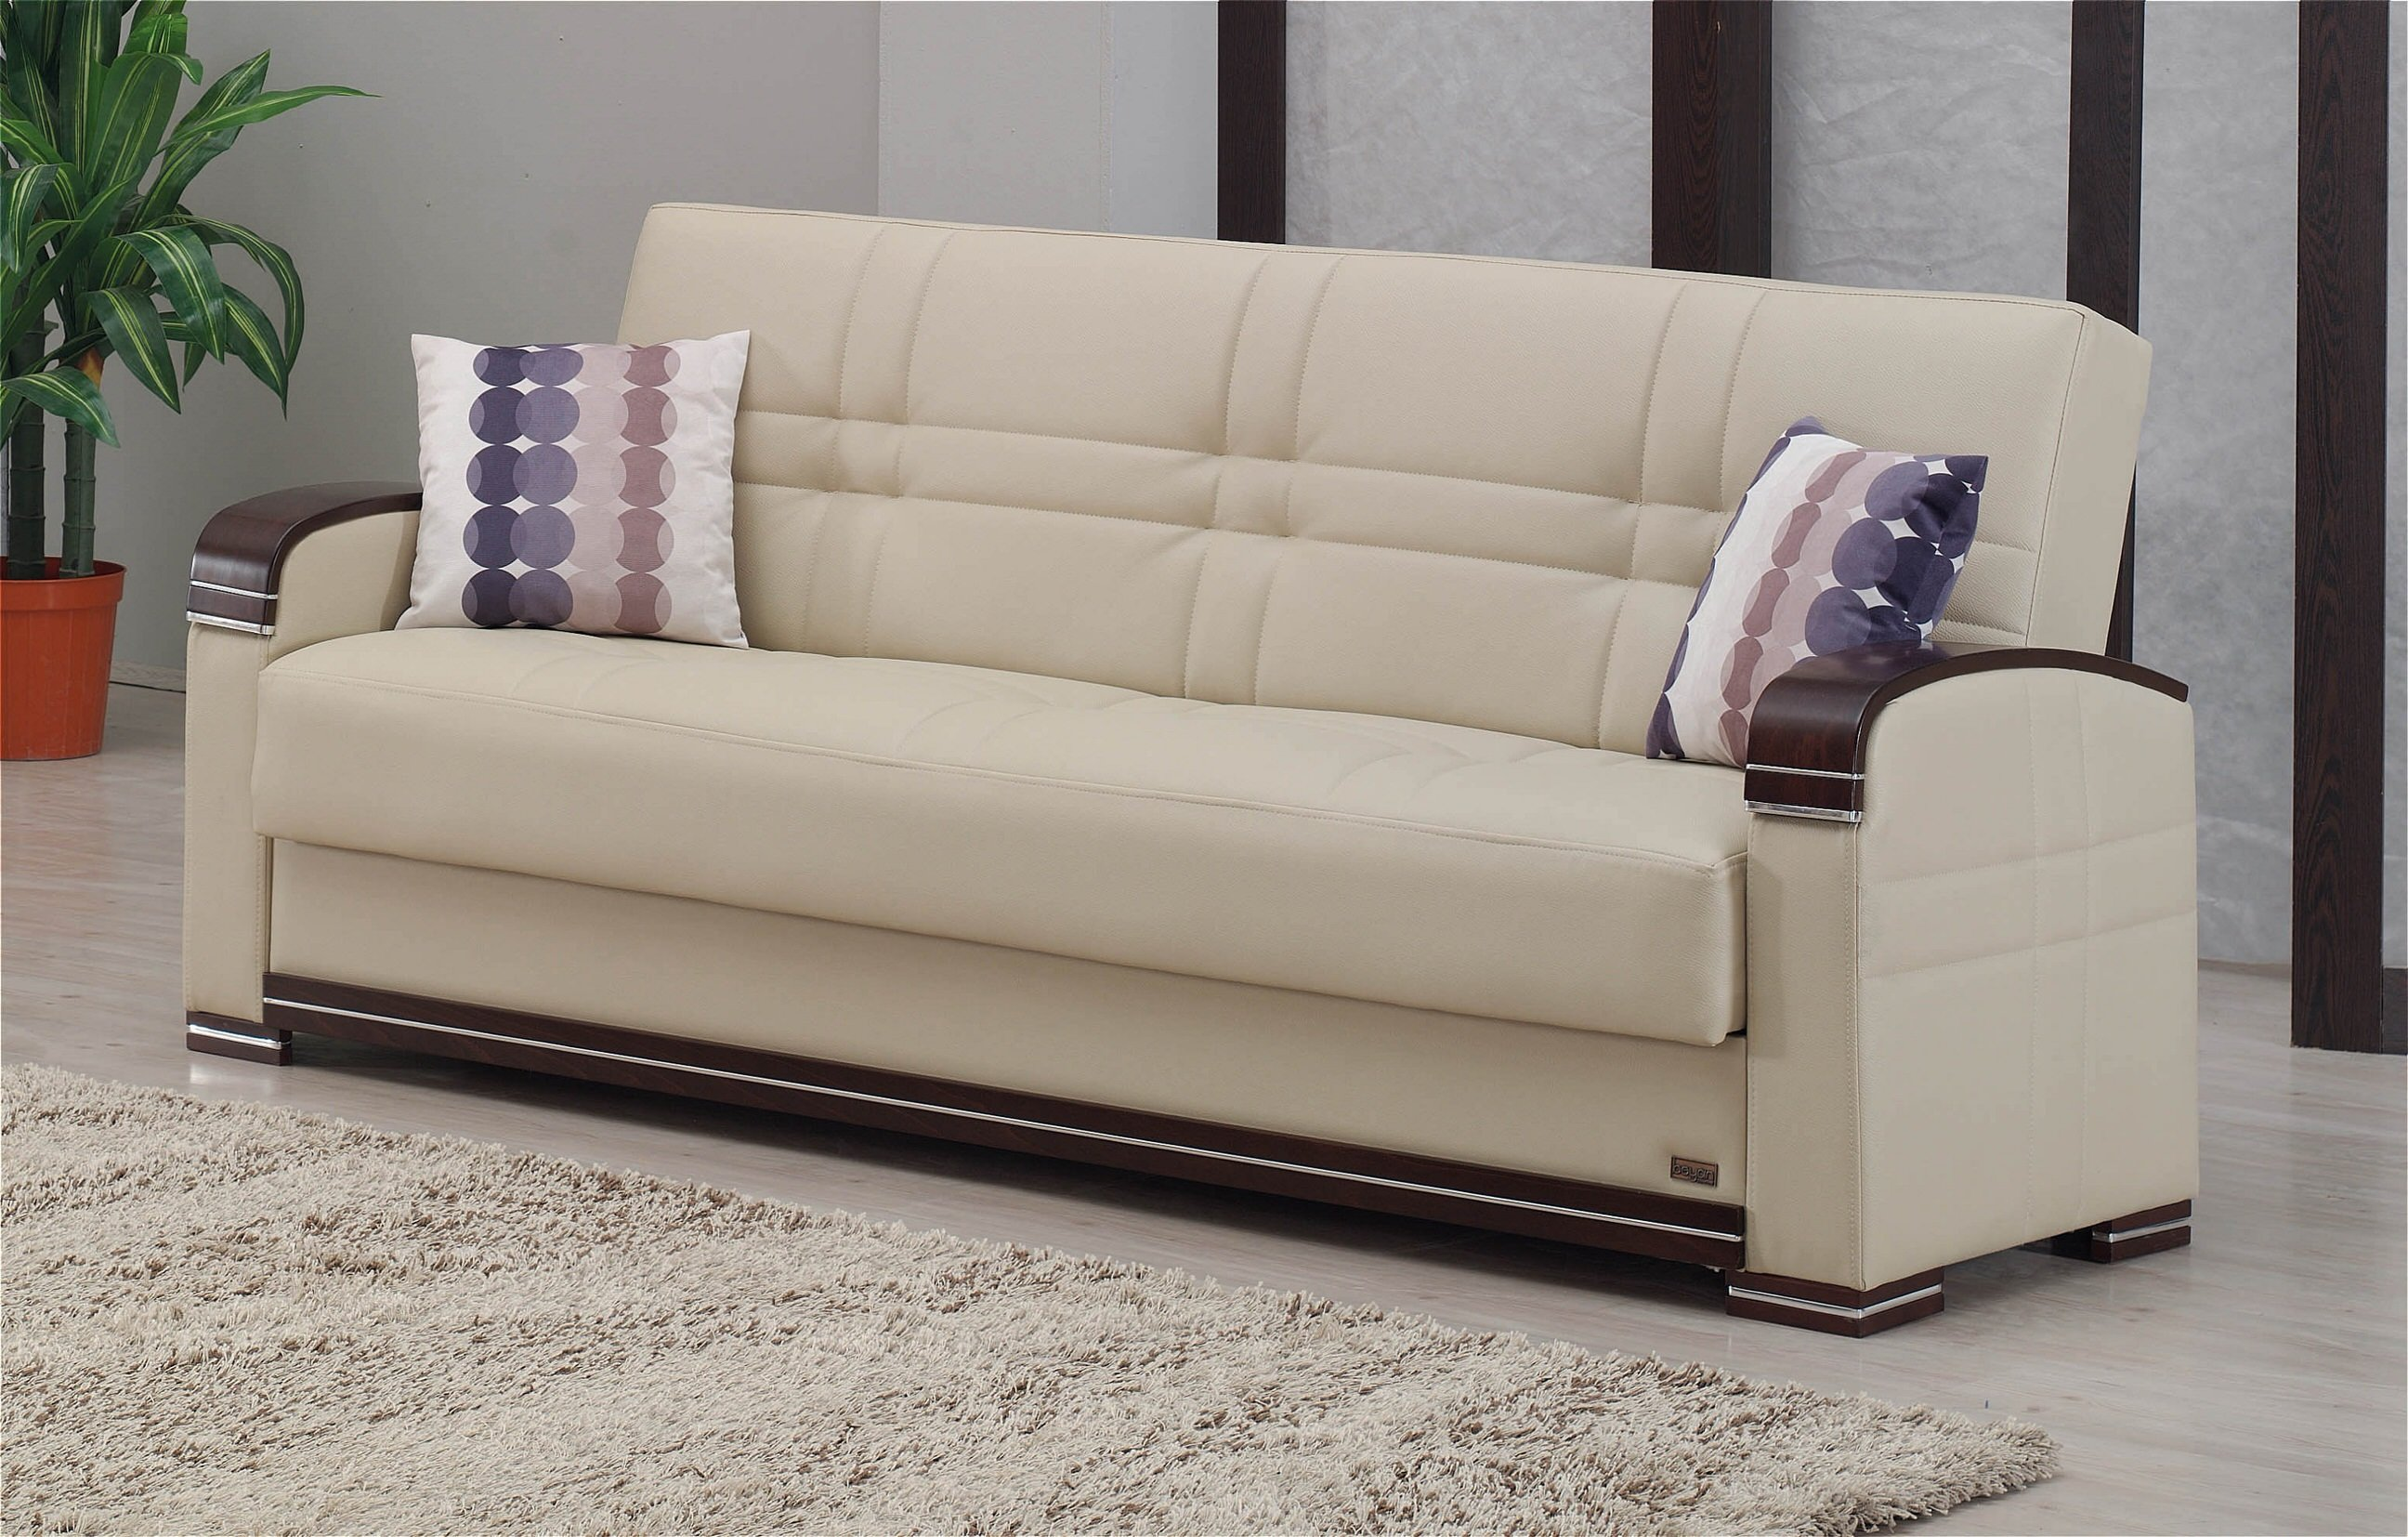 fulton cream leather sofa bed by empire furniture usa. Black Bedroom Furniture Sets. Home Design Ideas